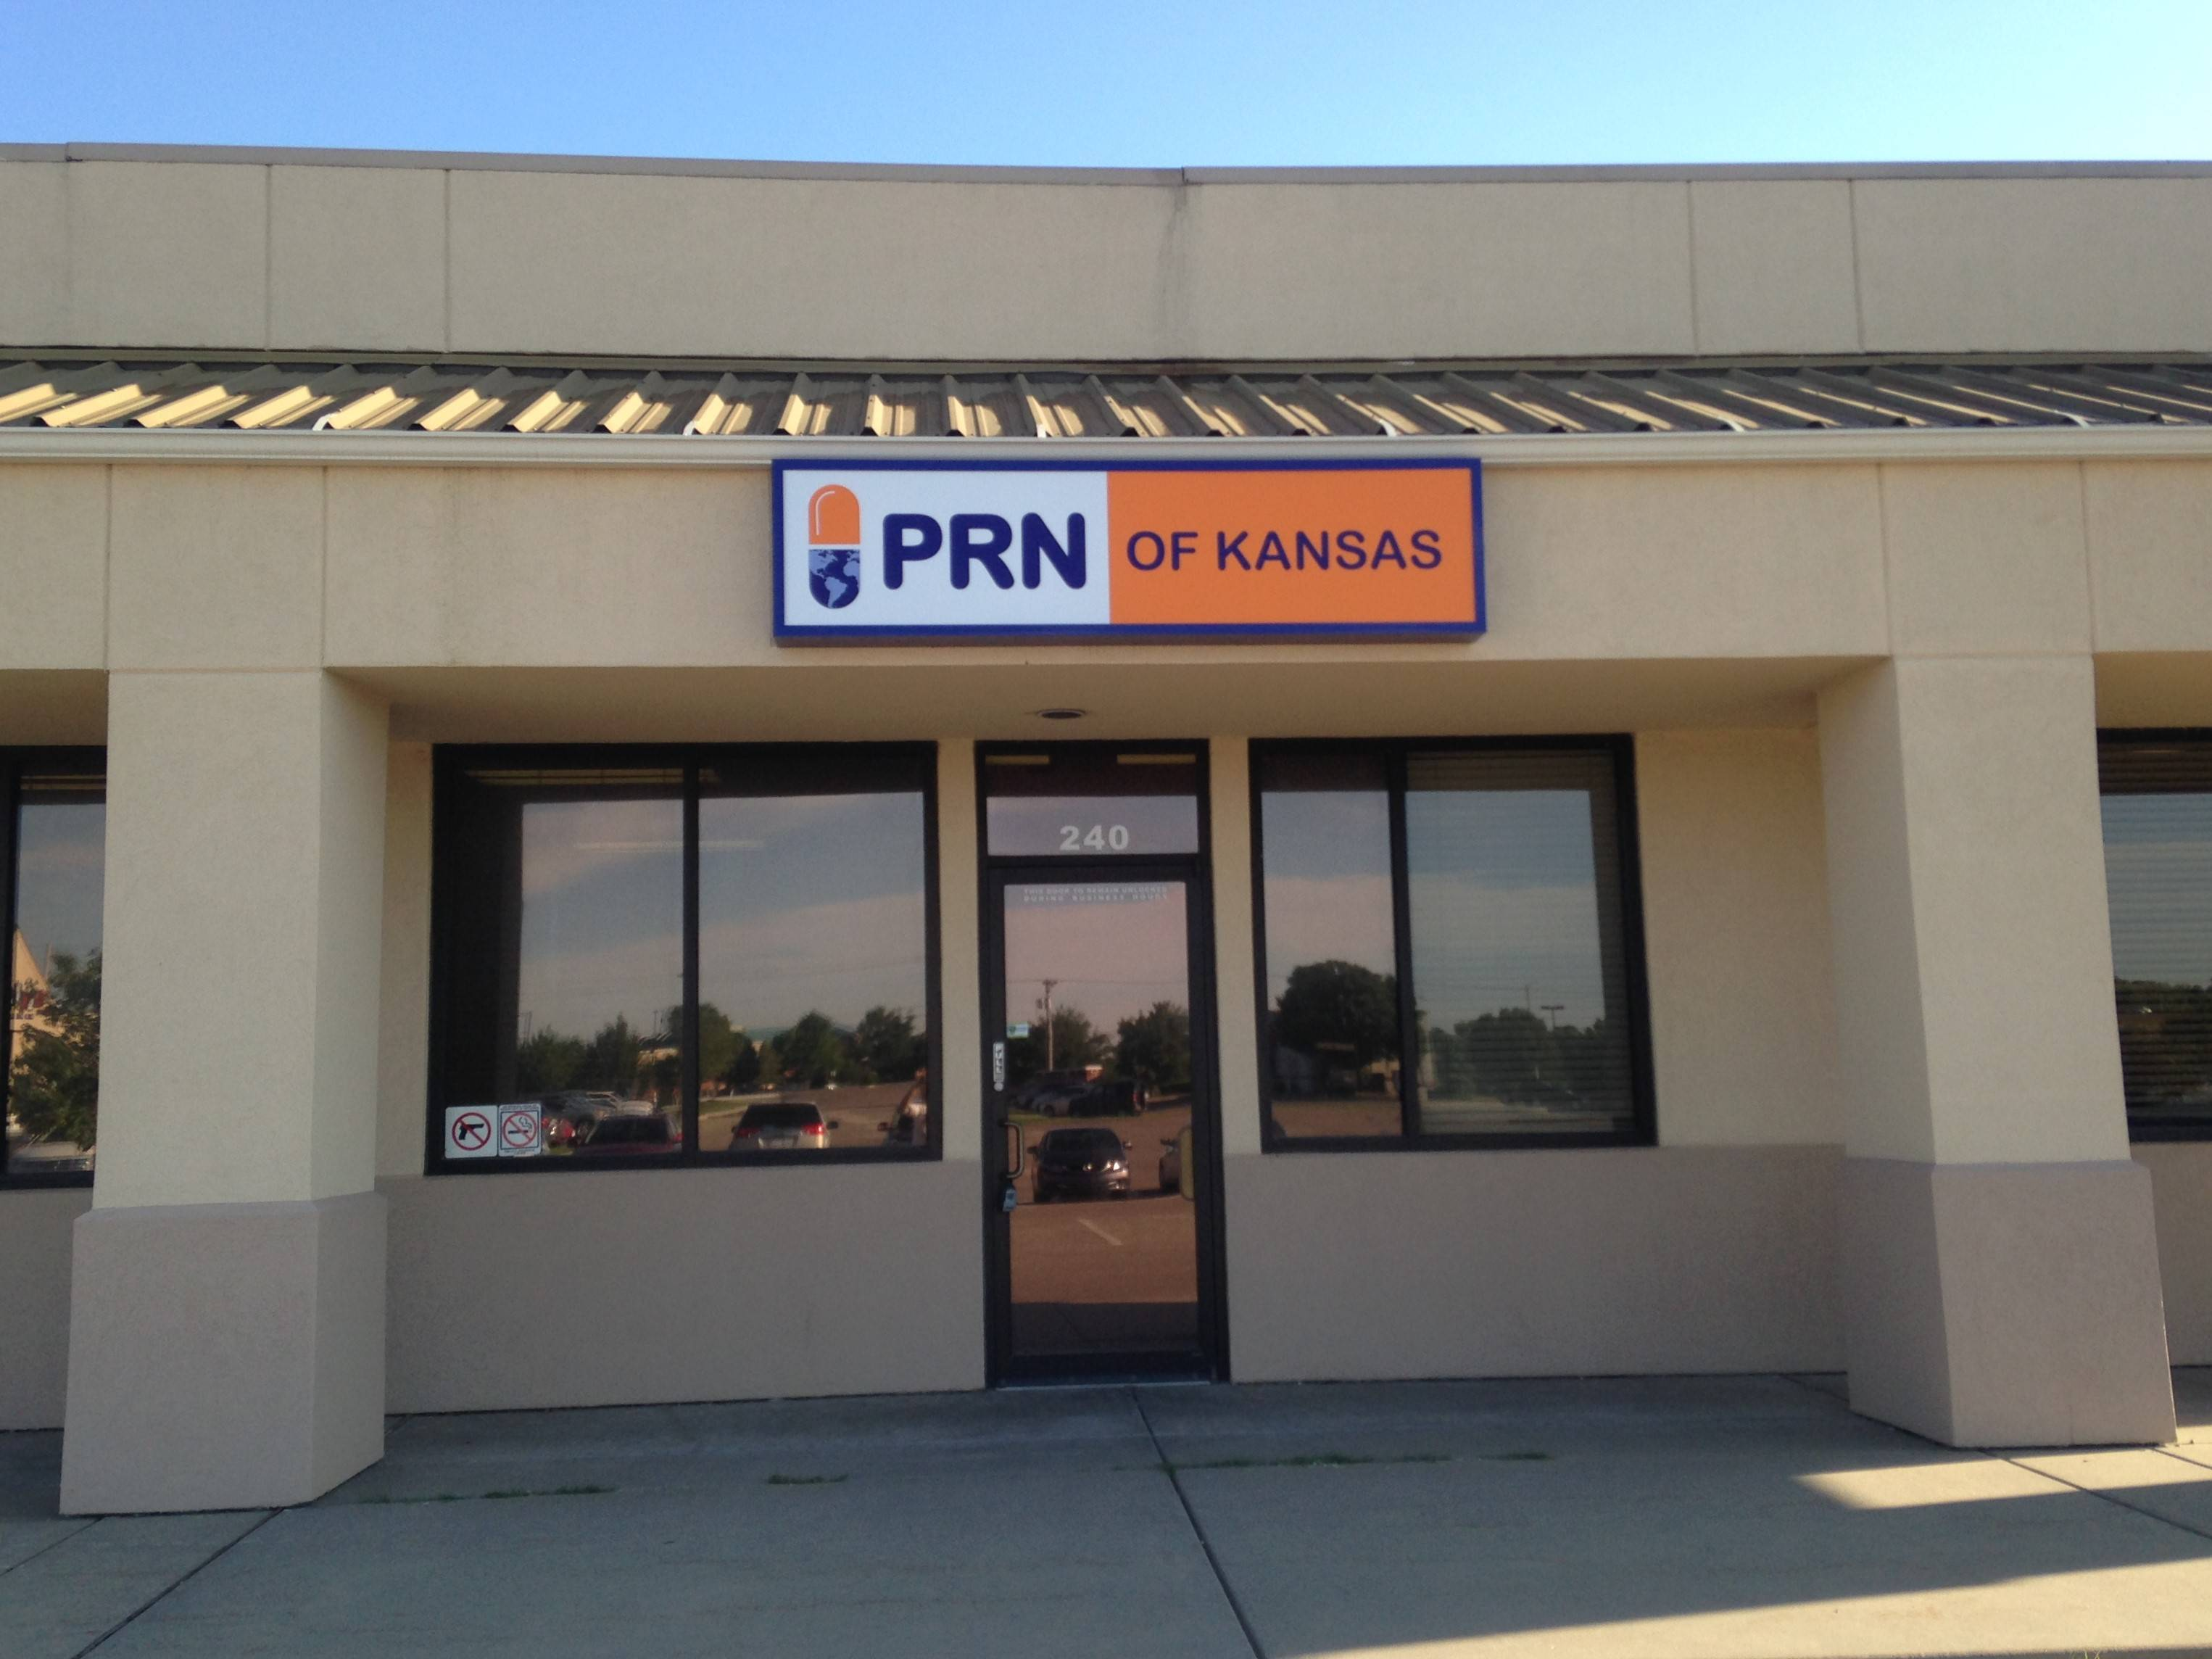 PRN of Kansas, 2260 N. Ridge Road, Suite 240, Wichita, Kansas, 67205